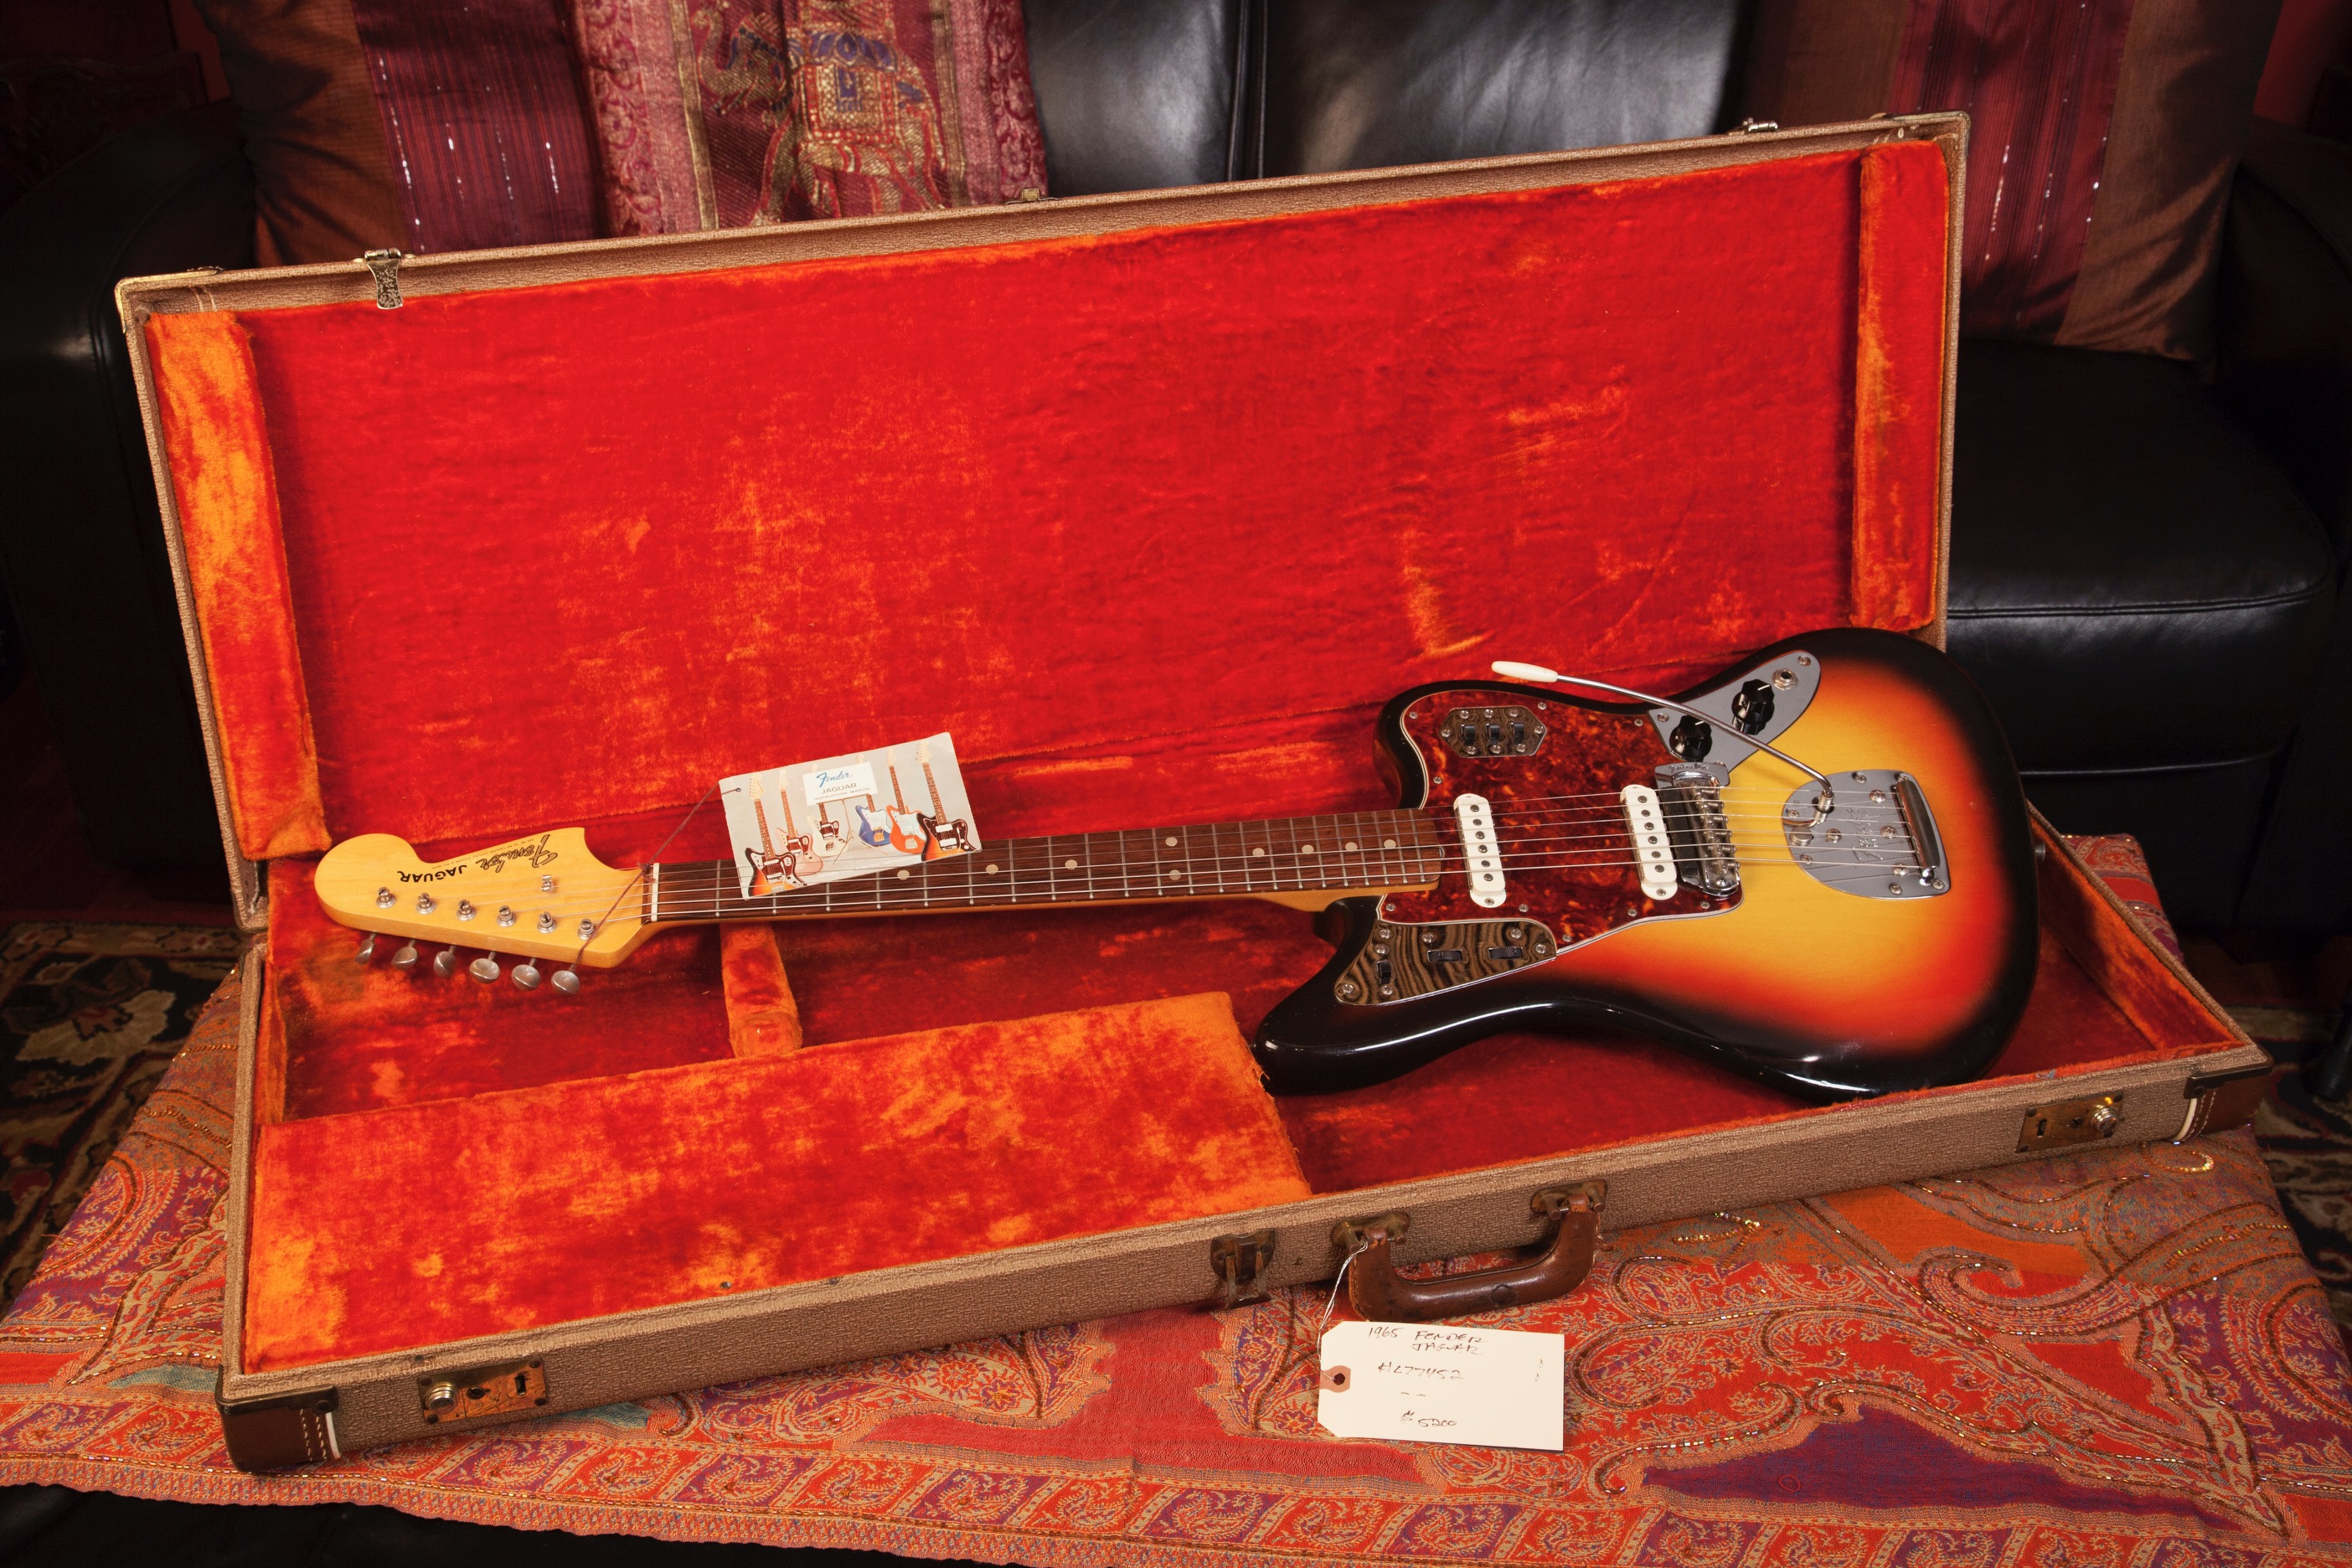 1965 Fender Jaguar Sunburst SN L77452